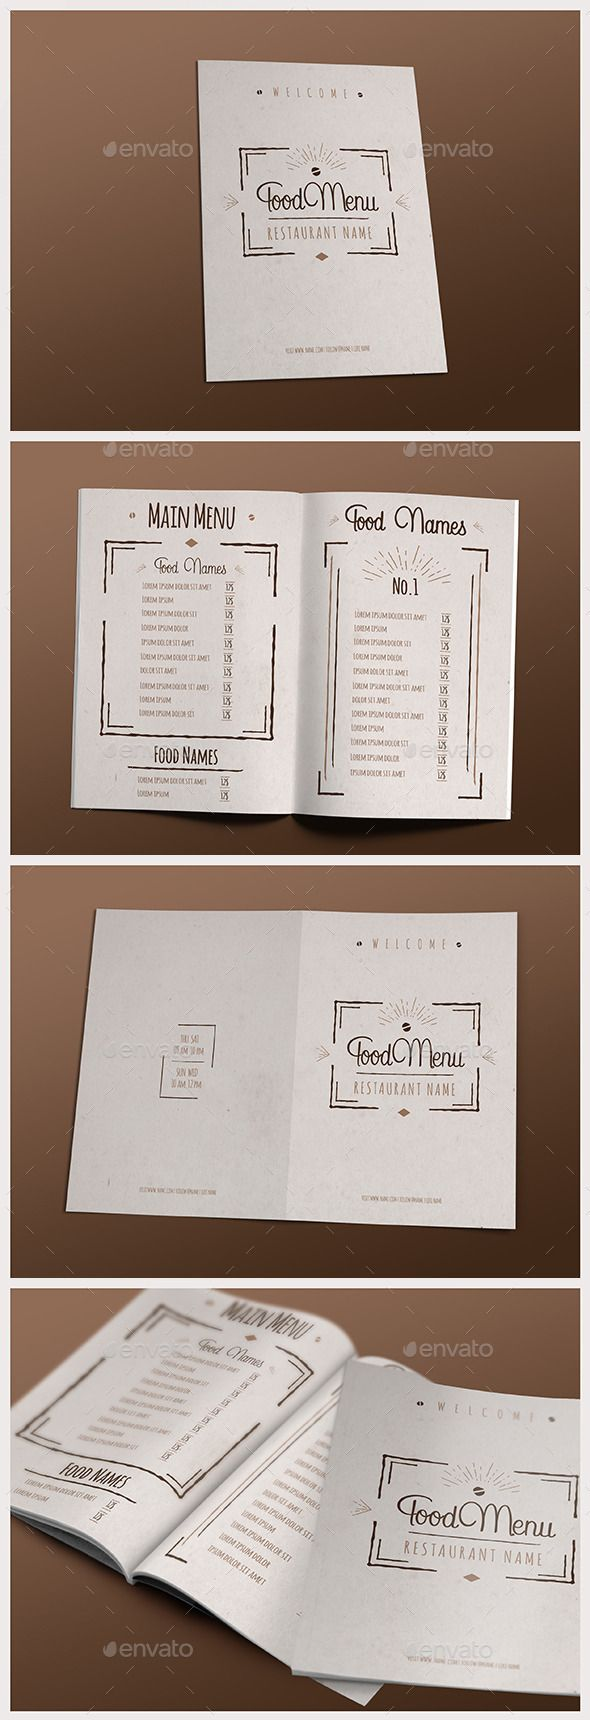 Elegant Food Menu Iv  Food Menu Menu And Menu Templates